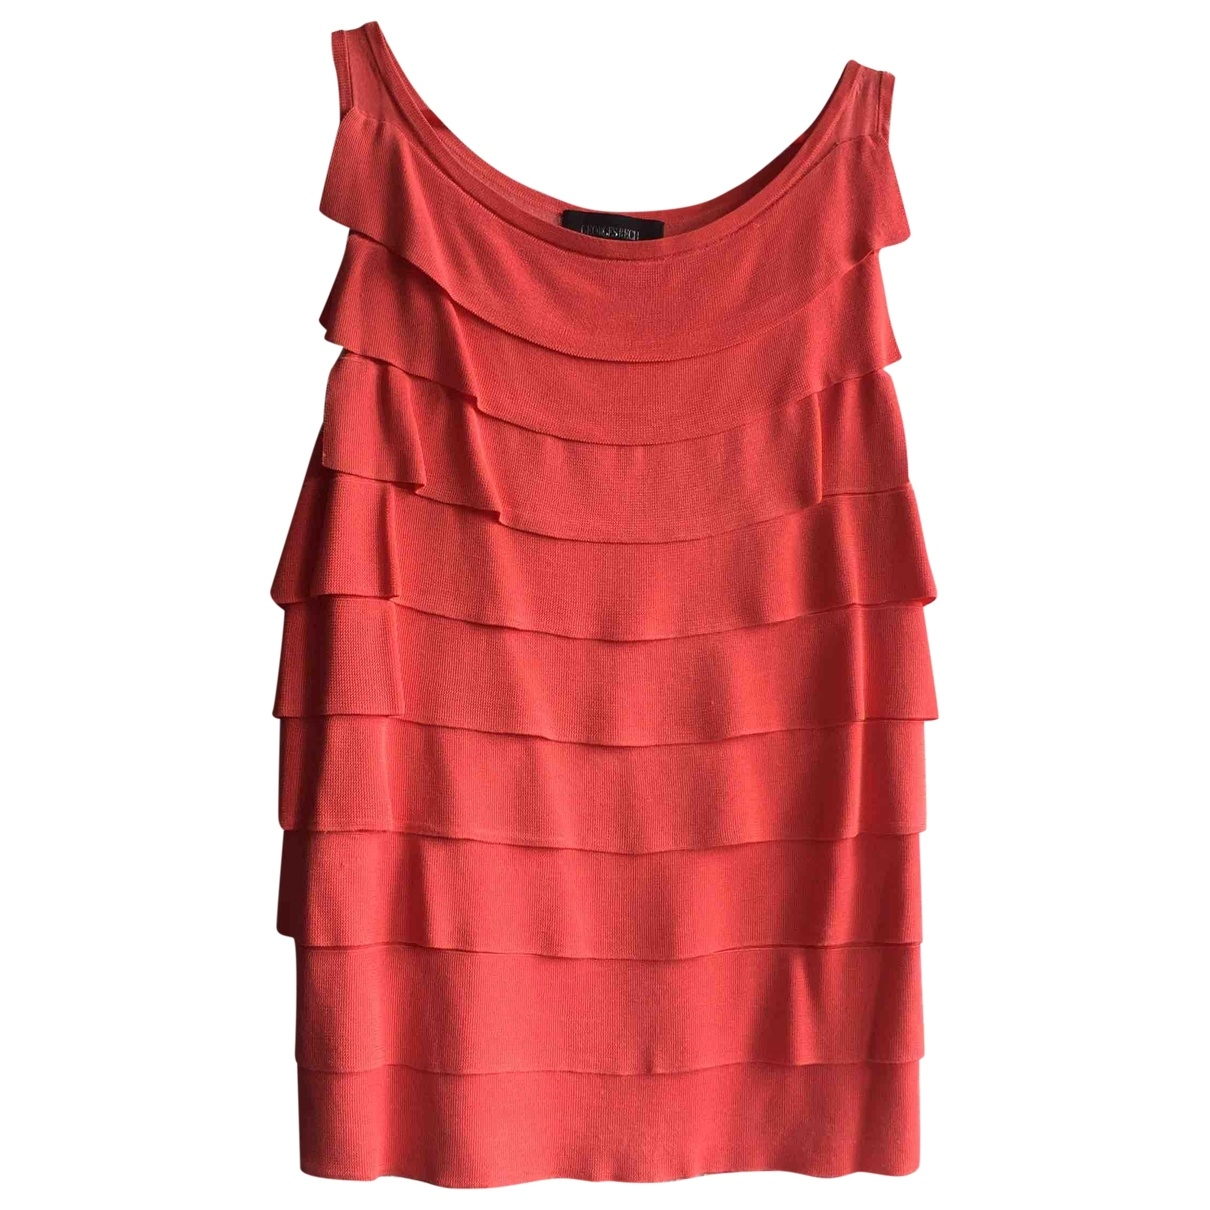 Georges Rech \N Pink  top for Women S International